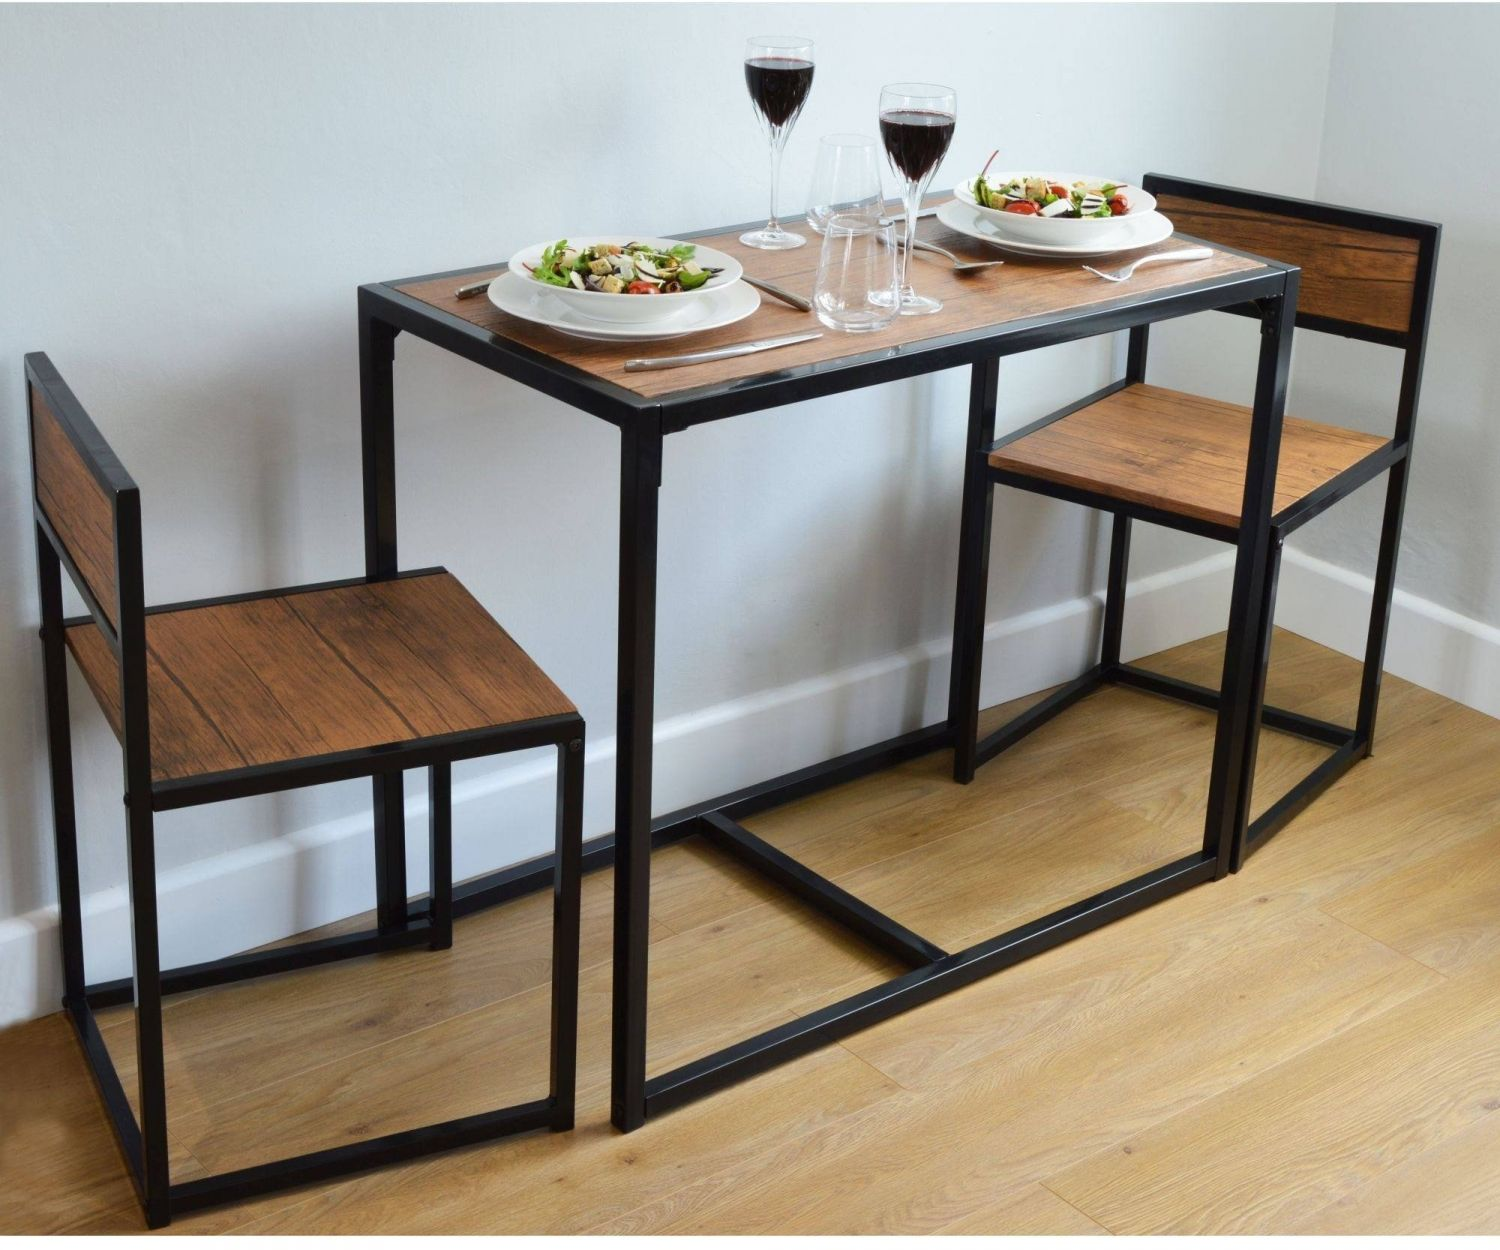 H4home Industrial Dining Table With Chairs Set Space Saving